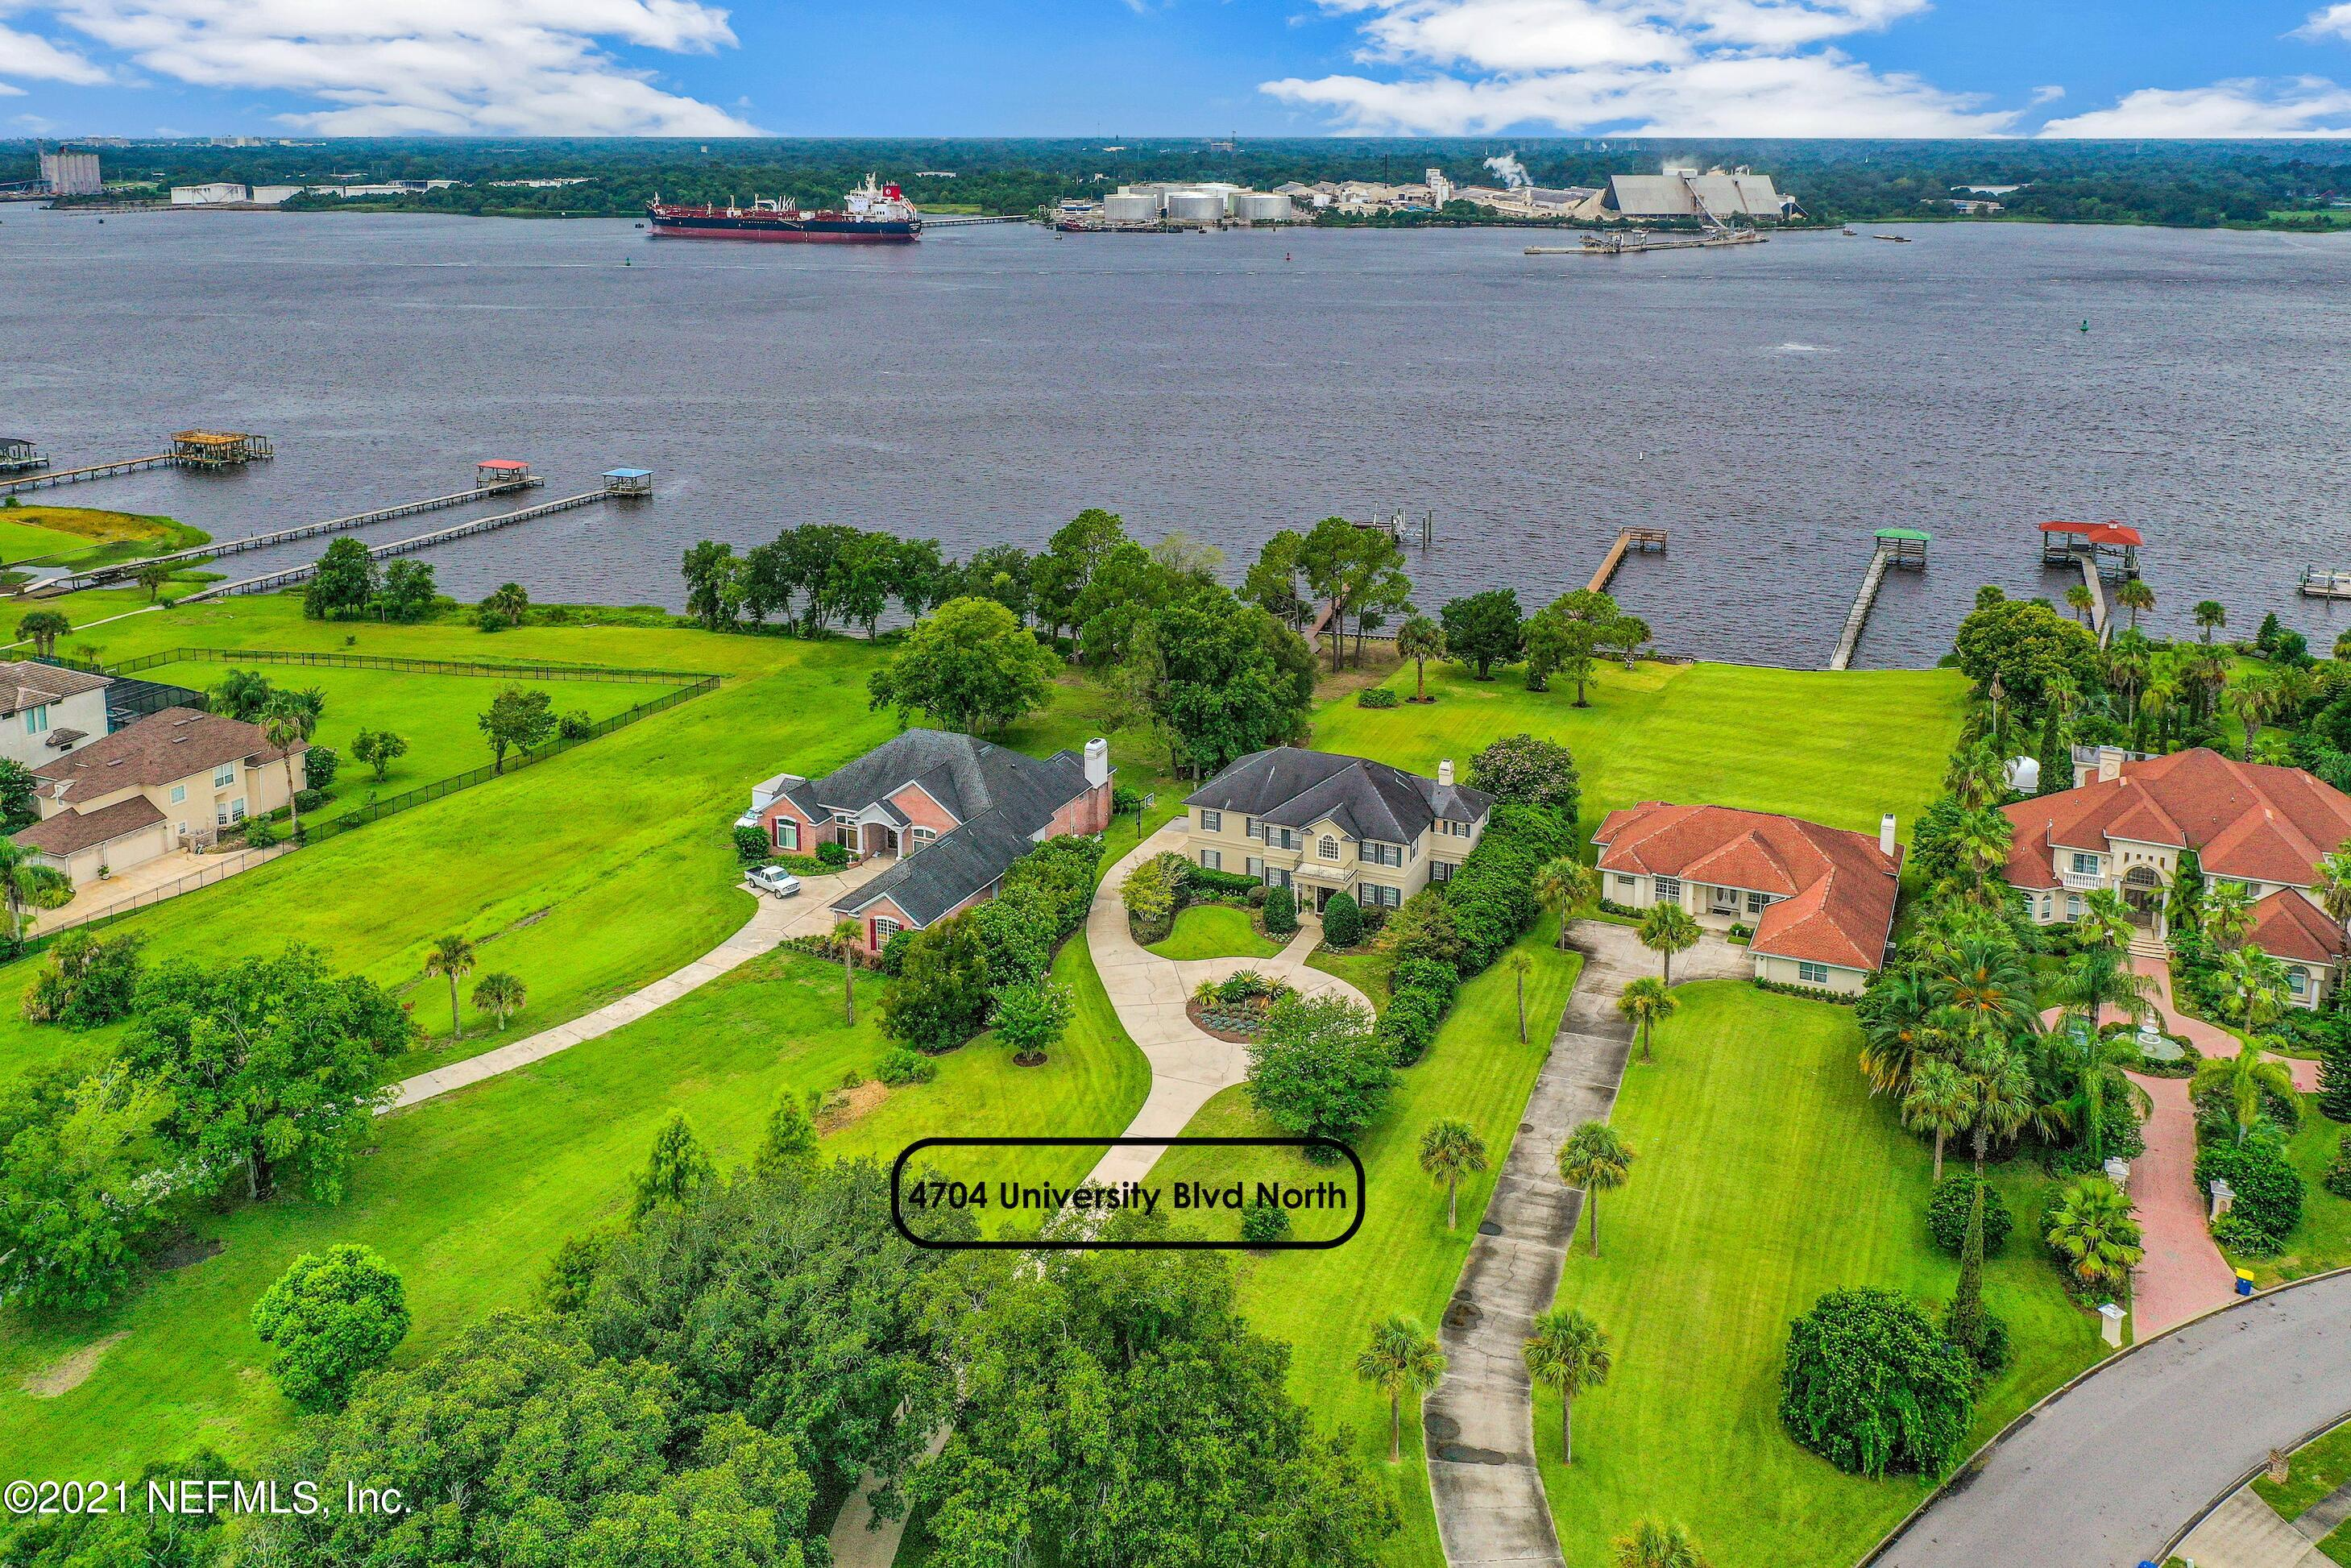 """Prepare to be CHARMED... southern charmed by this elegant & inviting RIVERFRONT custom-built beauty. Perfectly nestled down a winding driveway this home sits on over an acre & a half w/mature trees, lush landscaping & a sensational lawn running down to the river w/100 feet of water front, a new dock, & reinforced bulkhead all overlooking wide views of the St. Johns River...Boasting too many beautiful design features to mention, from the hickory hardwood floors, custom crown moldings, 10' ceilings, endless windows, & wood-burning fireplace, to the impeccably updated chef's dream custom kitchen seamlessly connected to the spectacular dining room & warm & inviting family room all w/endless river views..this home is a MUST SEE. Minutes to downtown, premier shopping, restaurants, & schools. As you drive down the palm-tree lined entrance to Rive St. Johns you'll know you've found a hidden gem in this picturesque riverfront community. Elegant & inviting this Kevin Gray Design Group custom-built riverfront home is built to perfection. Boasting over 3,800 square feet this 4-bedroom, 4 bathroom home is the epitome of Florida living overlooking wide views of the St Johns River. Step inside and you're welcomed HOME w/beautifully updated 6"""" wide Naturally Aged hickory hardwood flooring, rich-colored walls & the two-story foyer w/sweeping staircase, all as you peer down the hallway to the warm and inviting family room with RIVER views everywhere you look. Step into your dream custom kitchen boasting a Viking 36"""" built-in cooktop, vented range hood, above-cabinet up lighting, classic white subway tile backsplash, S&S Design custom wood soft-close cabinets, Pompeii Misterio Quartz counters, Kitchen Aid double-oven featuring convection micro/oven combo and 42"""" GE Monogram built-in refrigerator w/integrated cabinetry. The kitchen will be the perfect gathering place, around the island, at the eat-at counter or sitting down for a quick bite at the eat-in nook, all while enjoying river """